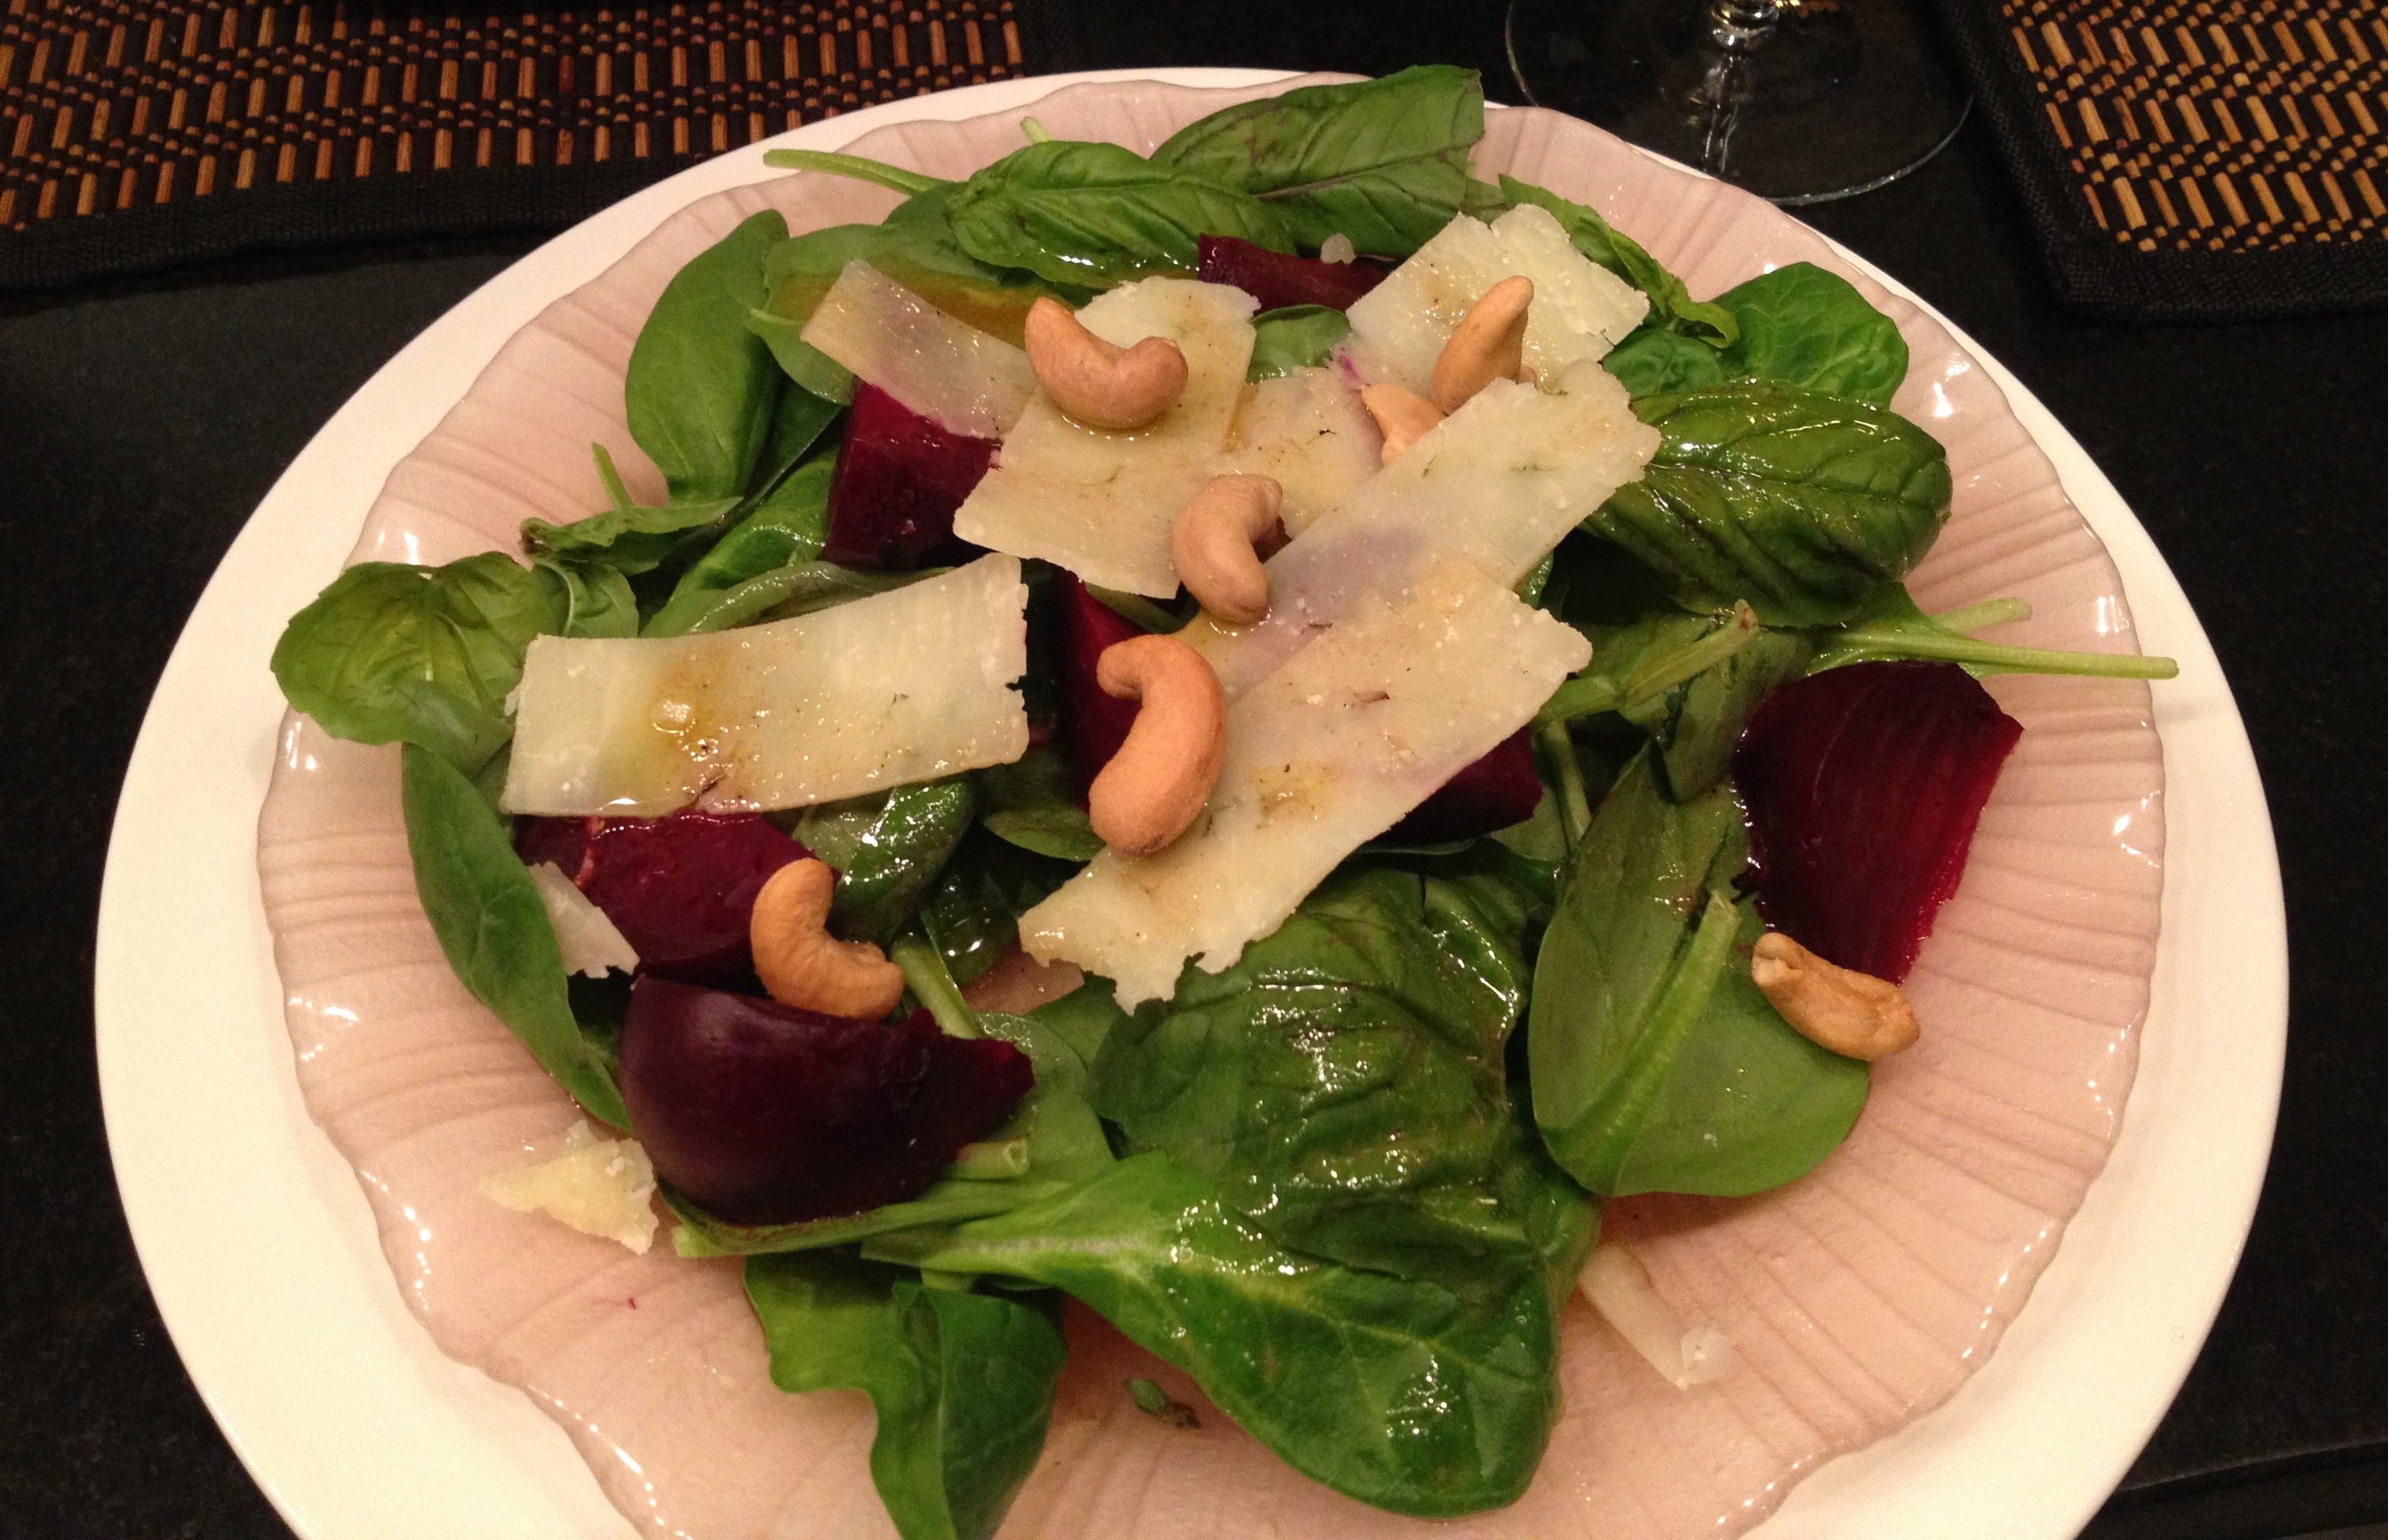 Beef stew spinach salad with basil, beets pecorino, cashews